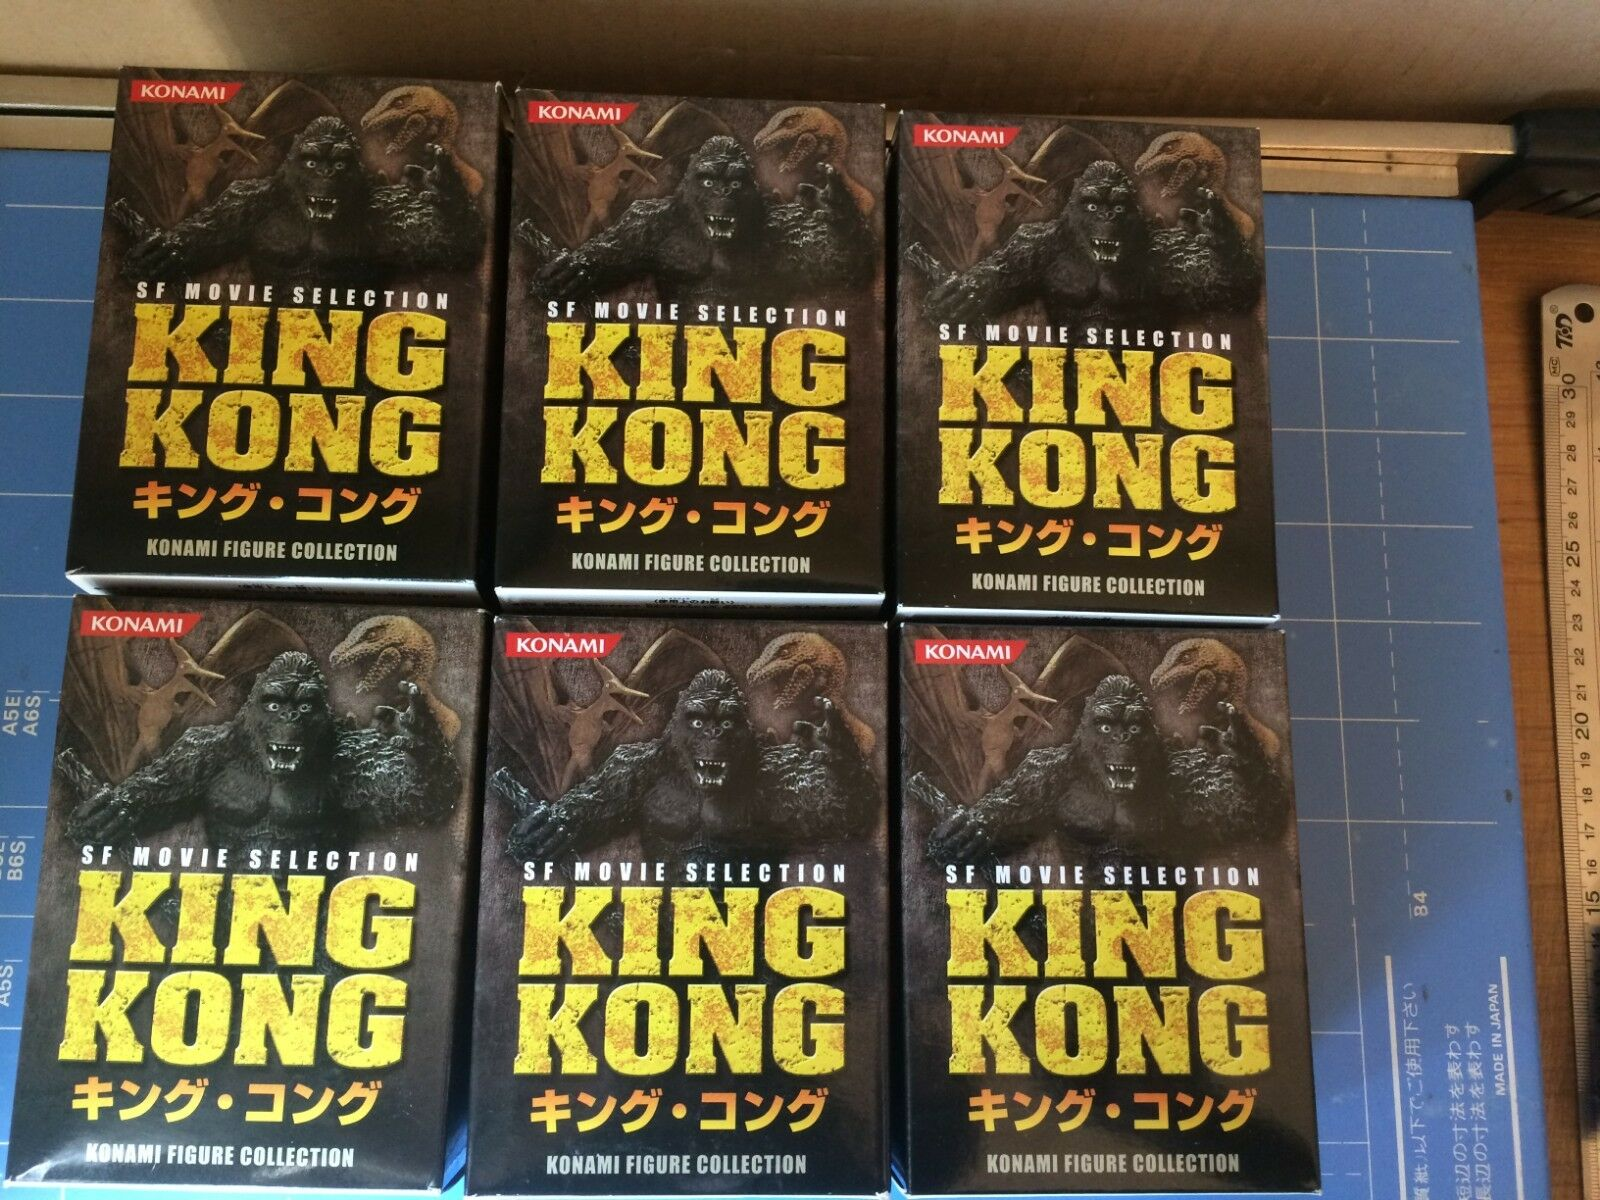 Konami,SF Movie Selection,KING KONG,All 6 Figures Complete Set